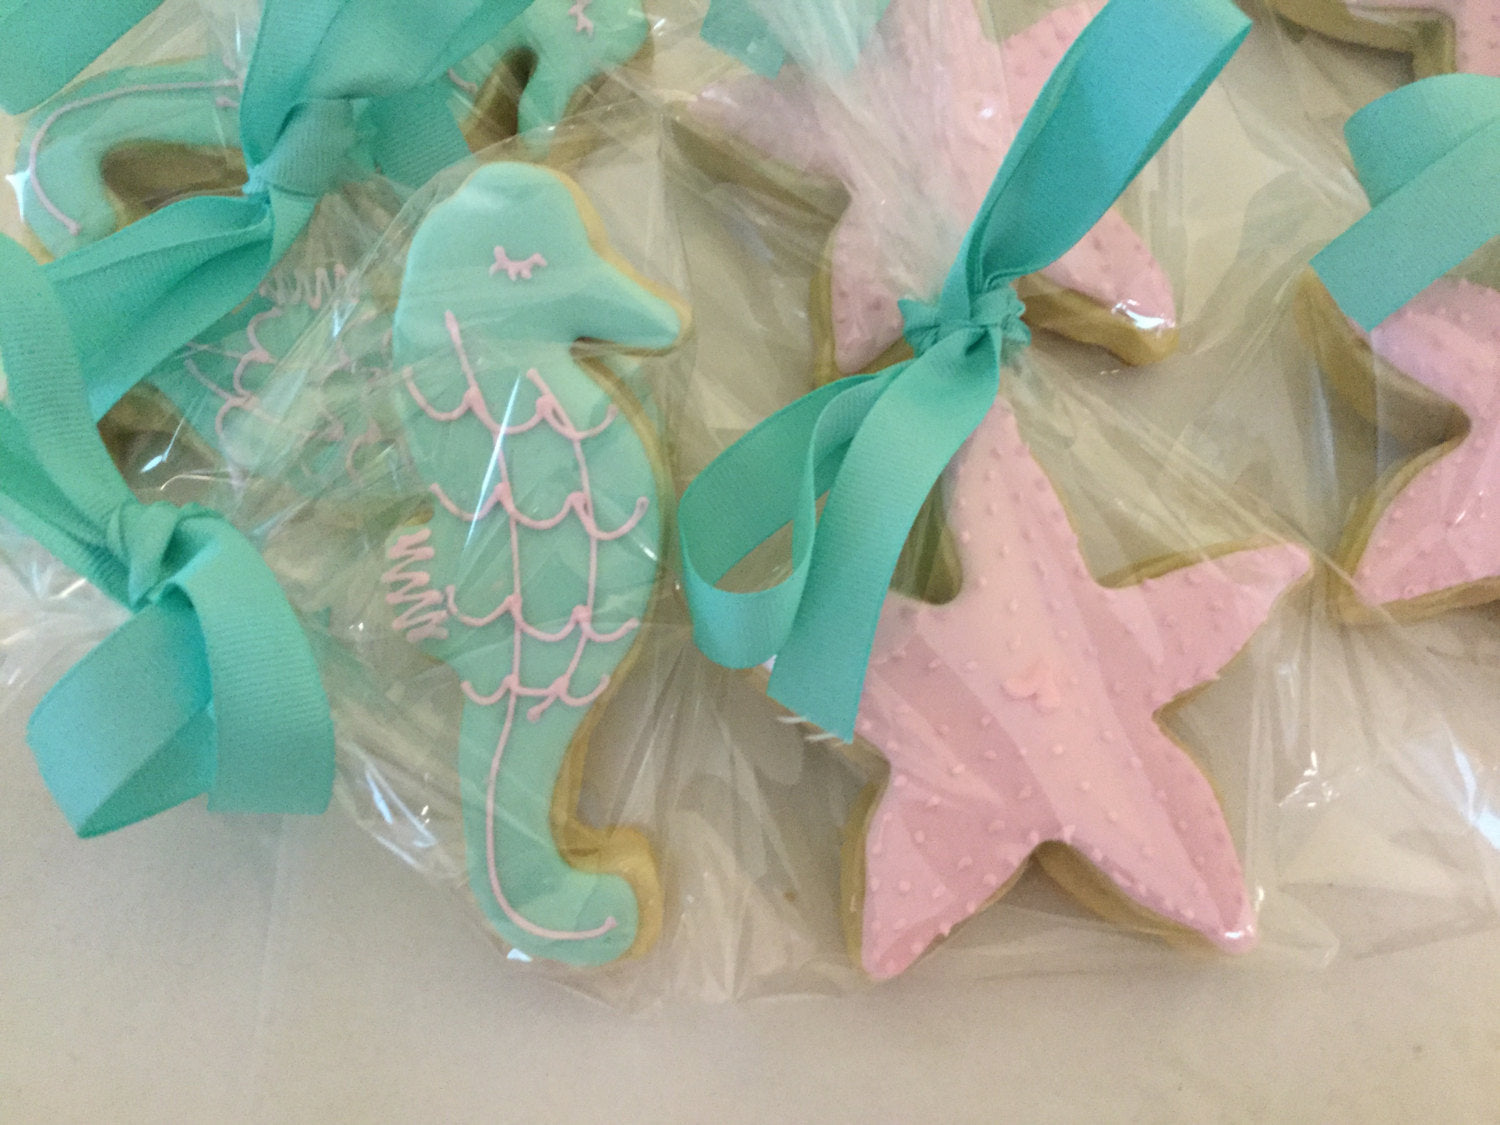 Pastel Seahorse And Starfish Cookies Under The Sea Theme Just Baked Sweets